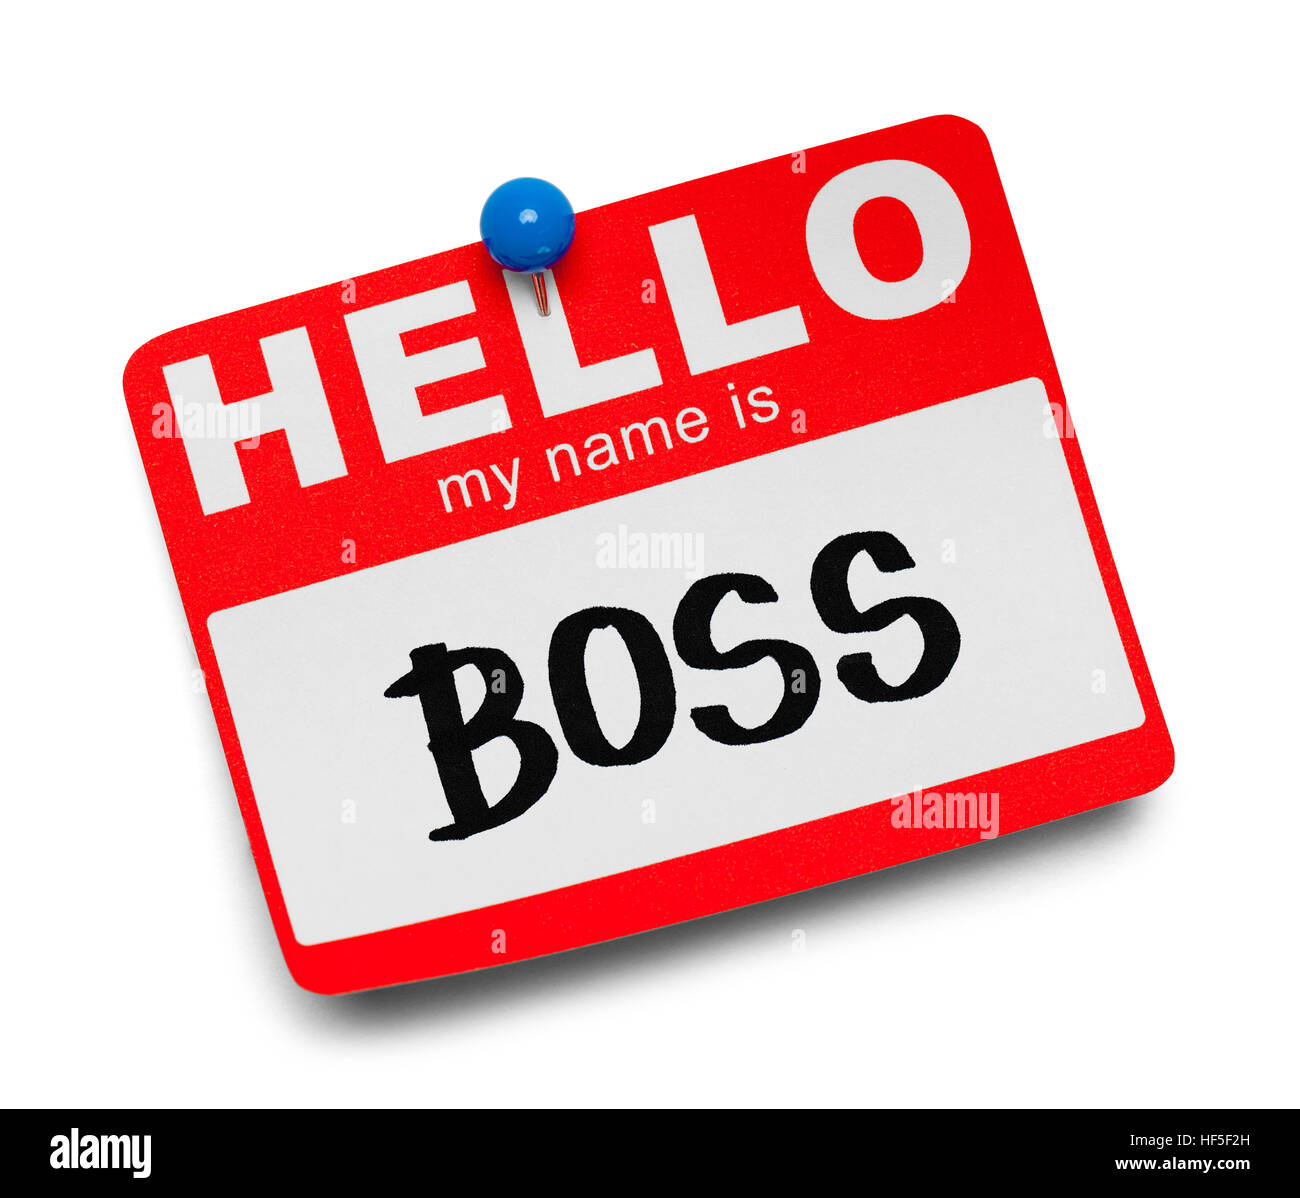 Hallo, mein Name ist Boss Tag, Isolated on White Background. Stockbild